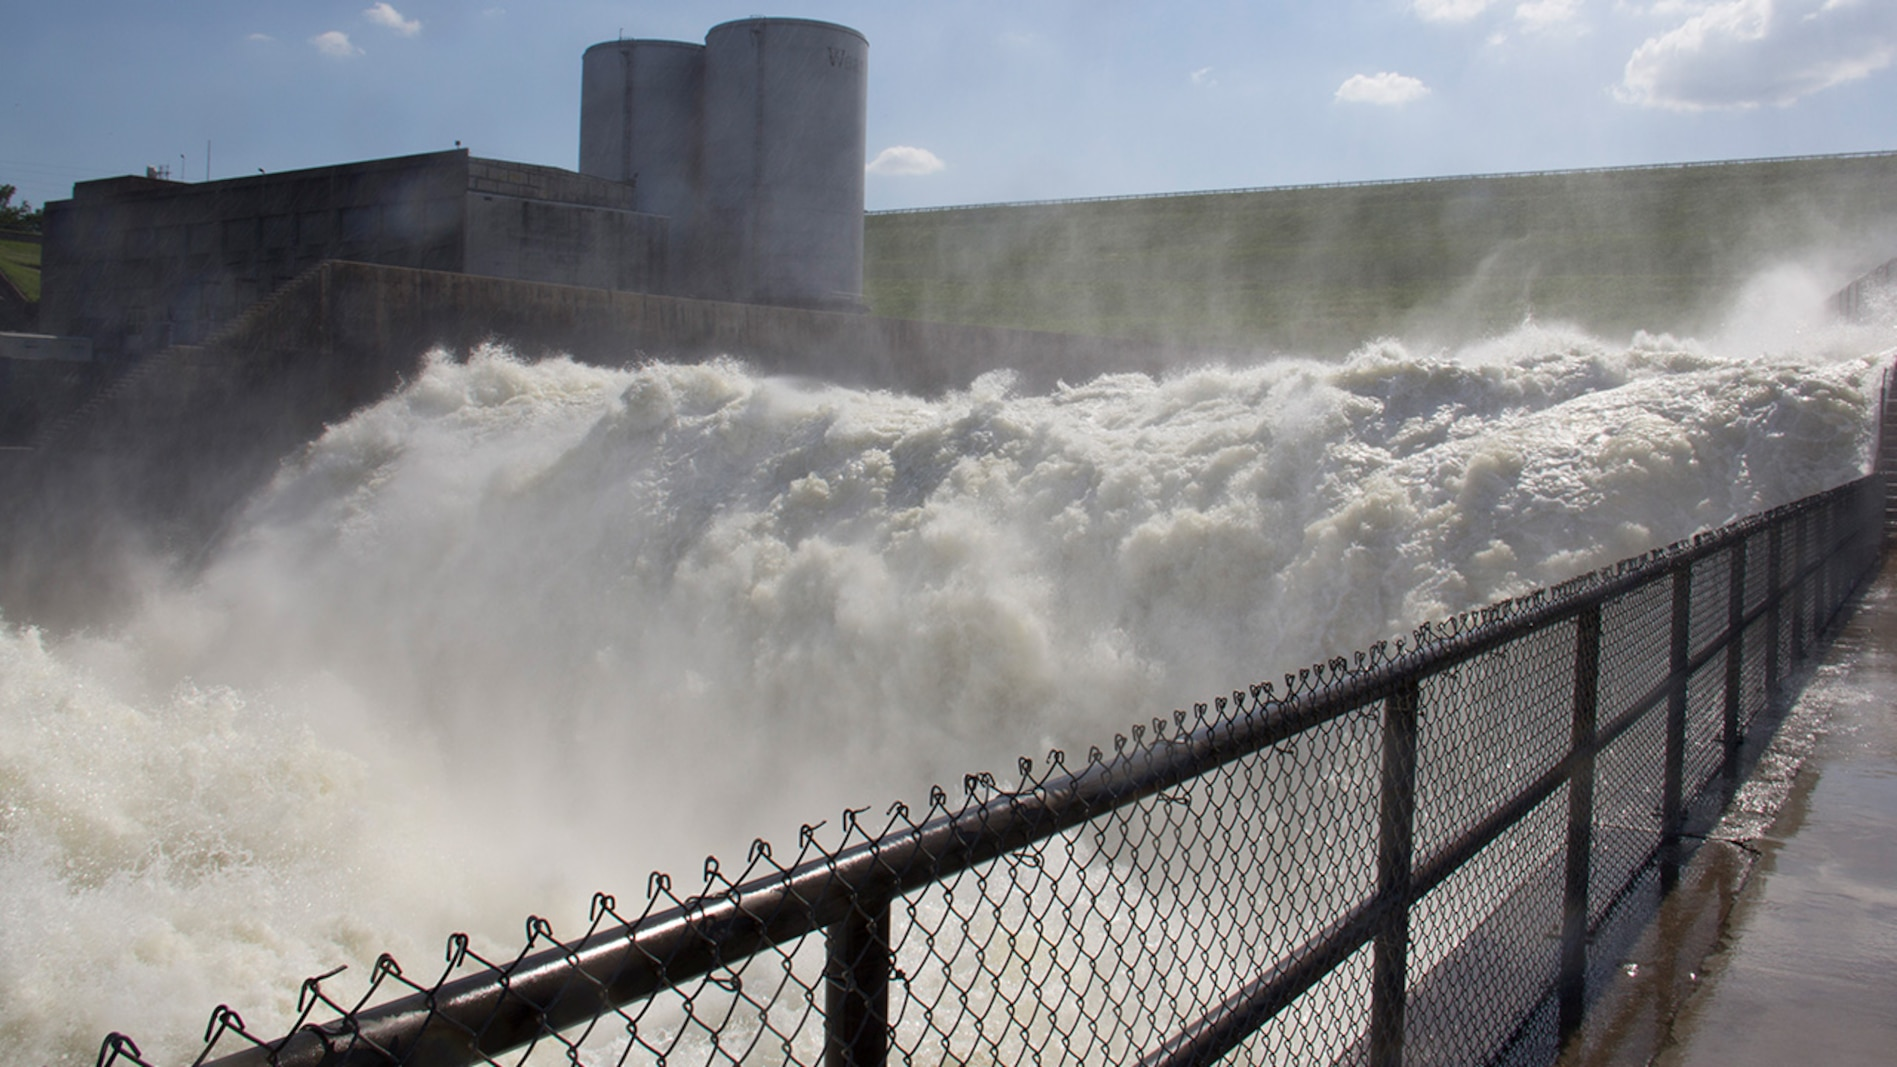 Denison Dam Floodwater Releases